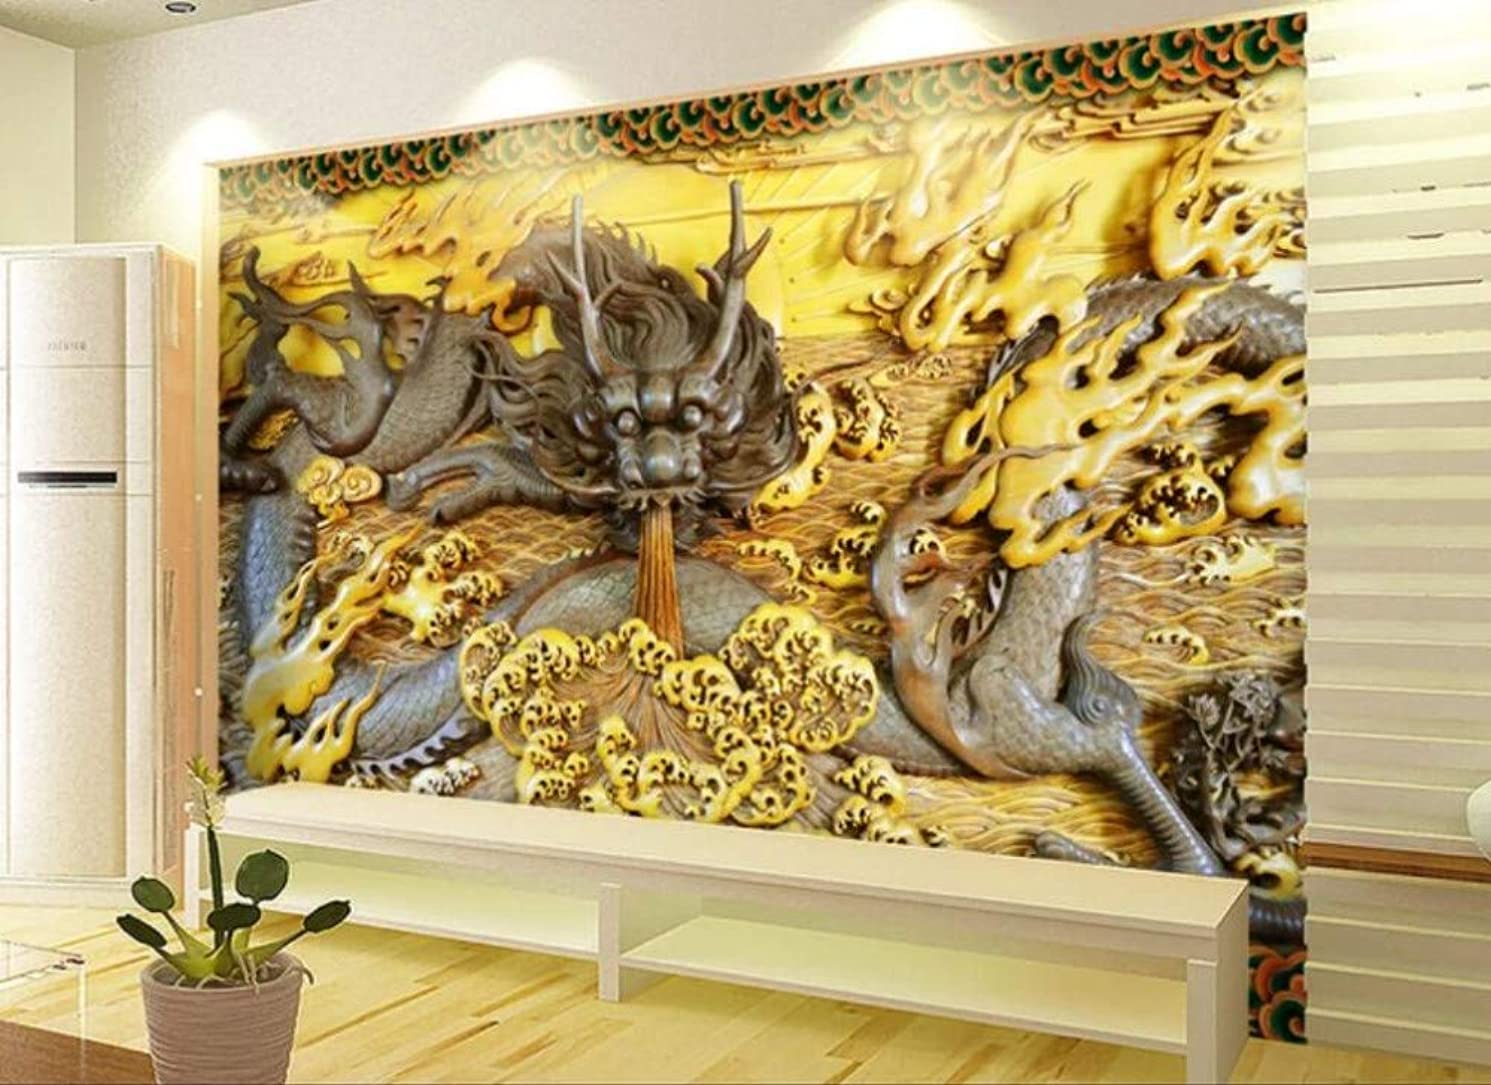 Wall Mural 3D Stone Carving Wood Carving Dragon Custom Wallpaper 3D Effect Living Room Bedroom Wall Murals,350cmX256cm